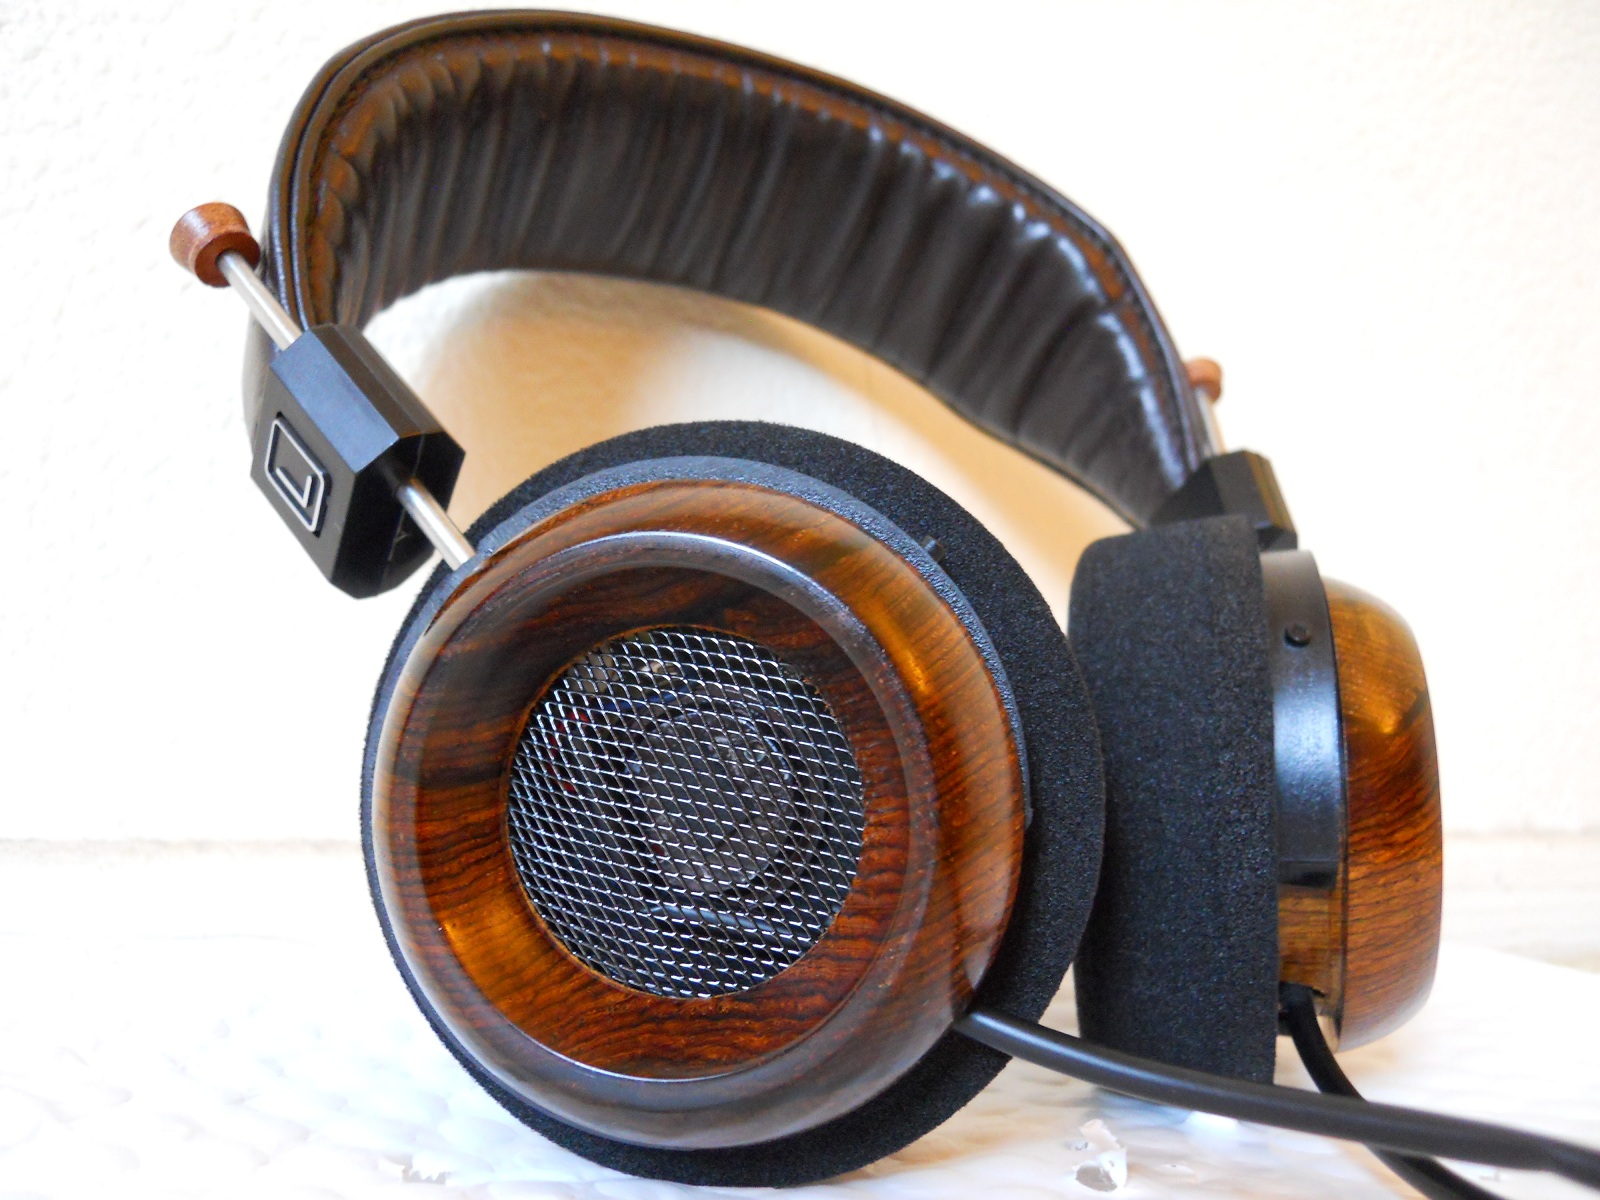 SR60-Mod part II | Page 108 | Headphone Reviews and